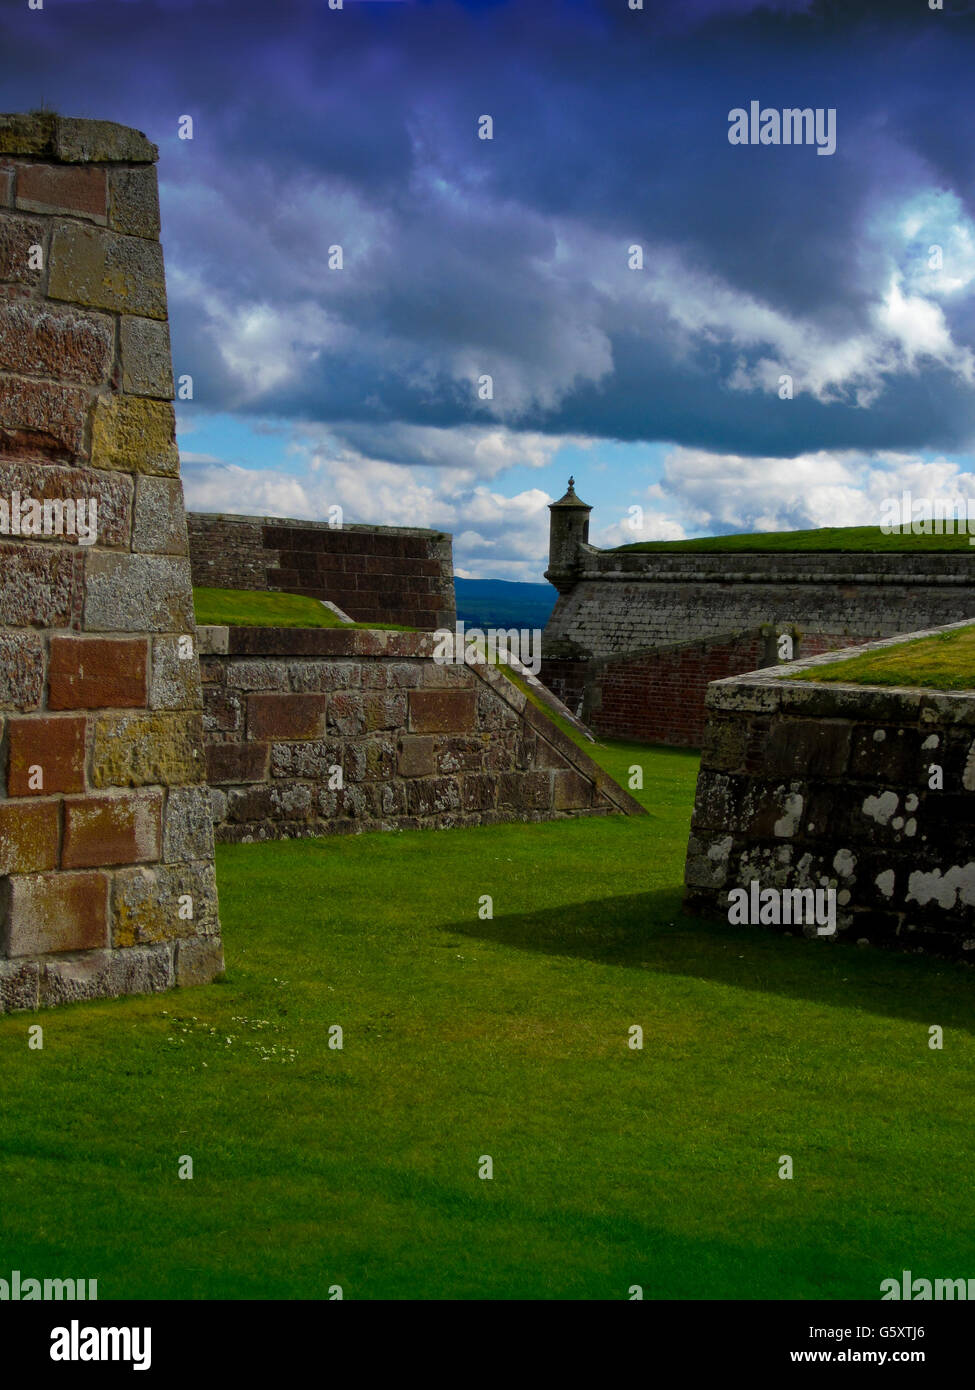 Fortifications and lookout turret, Fort George, Inverness, Scotland - Stock Image